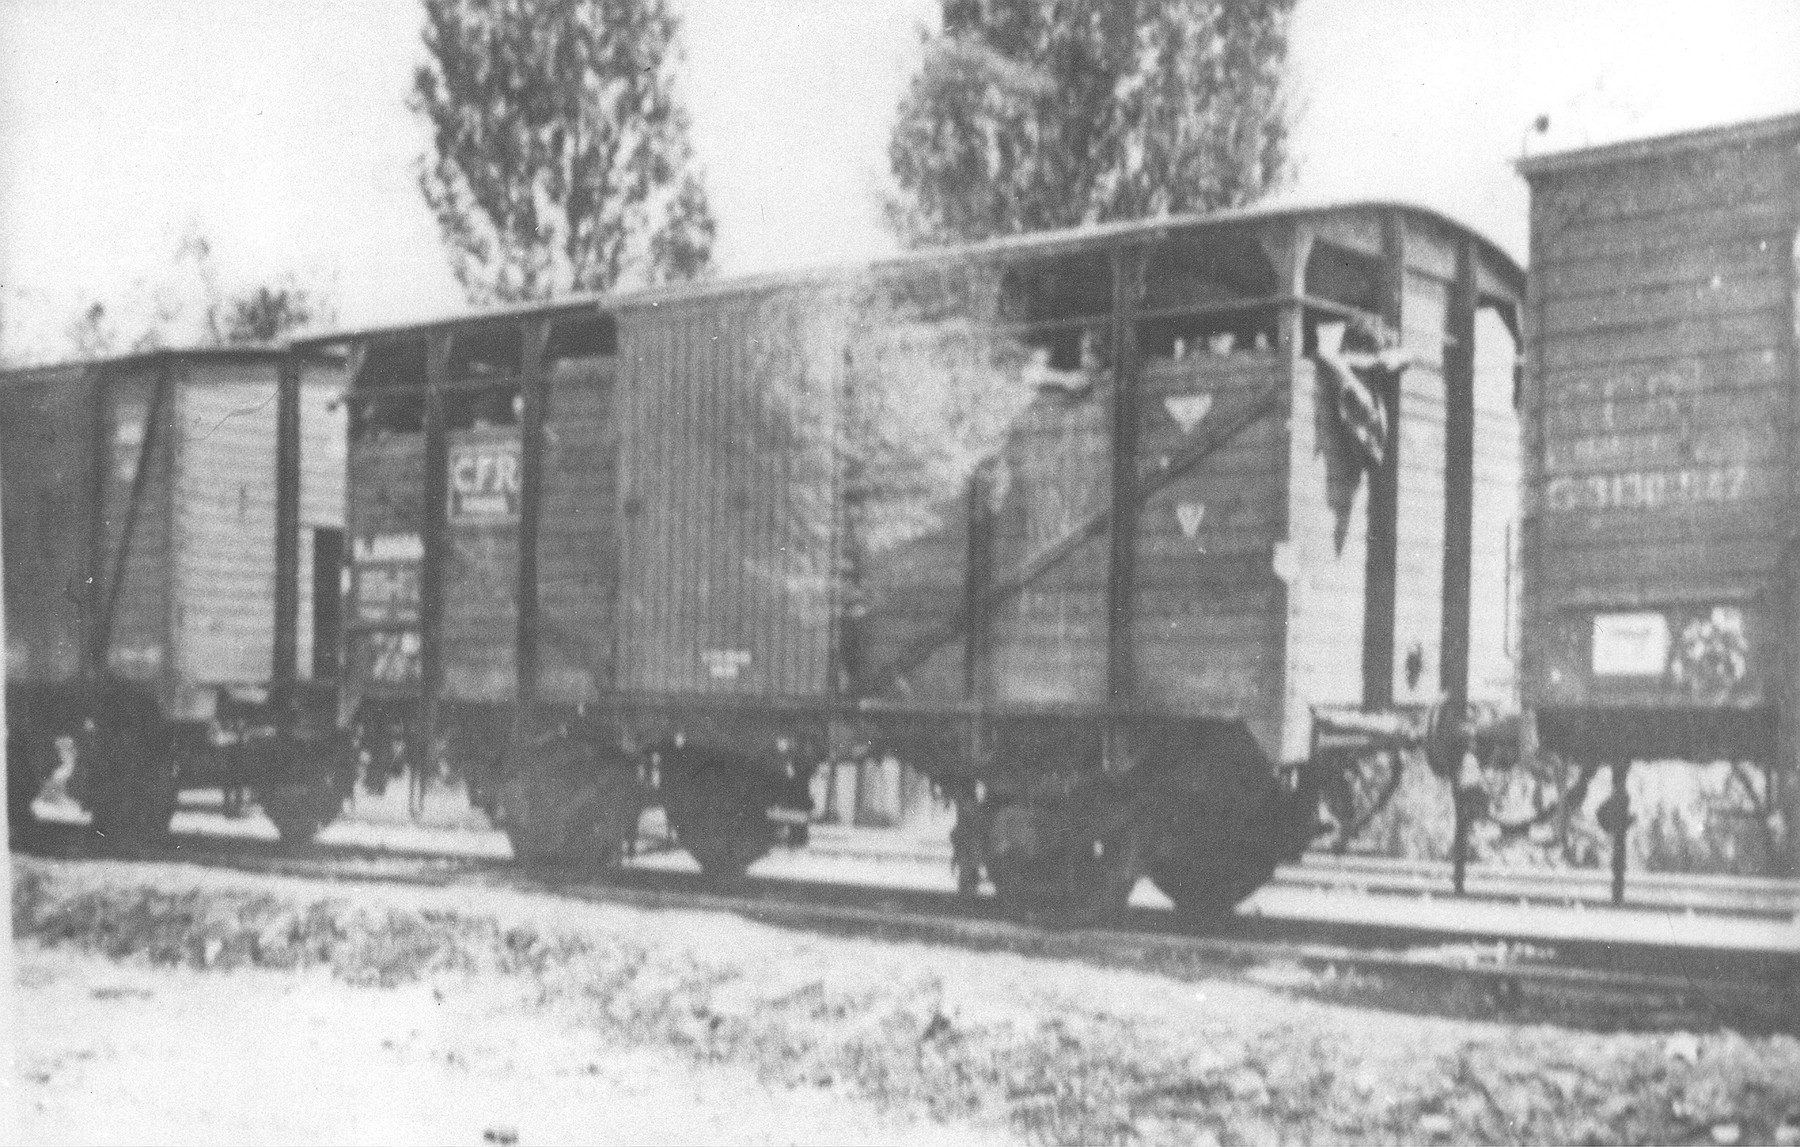 The Iasi-Calarasi death train at the railroad station in Targu-Frumos.  At Targu-Frumos the command of the train guard was taken over by 2nd Lt. Aurel Triandaf, assisted by Sgt. Maj. Anastase Bratu.